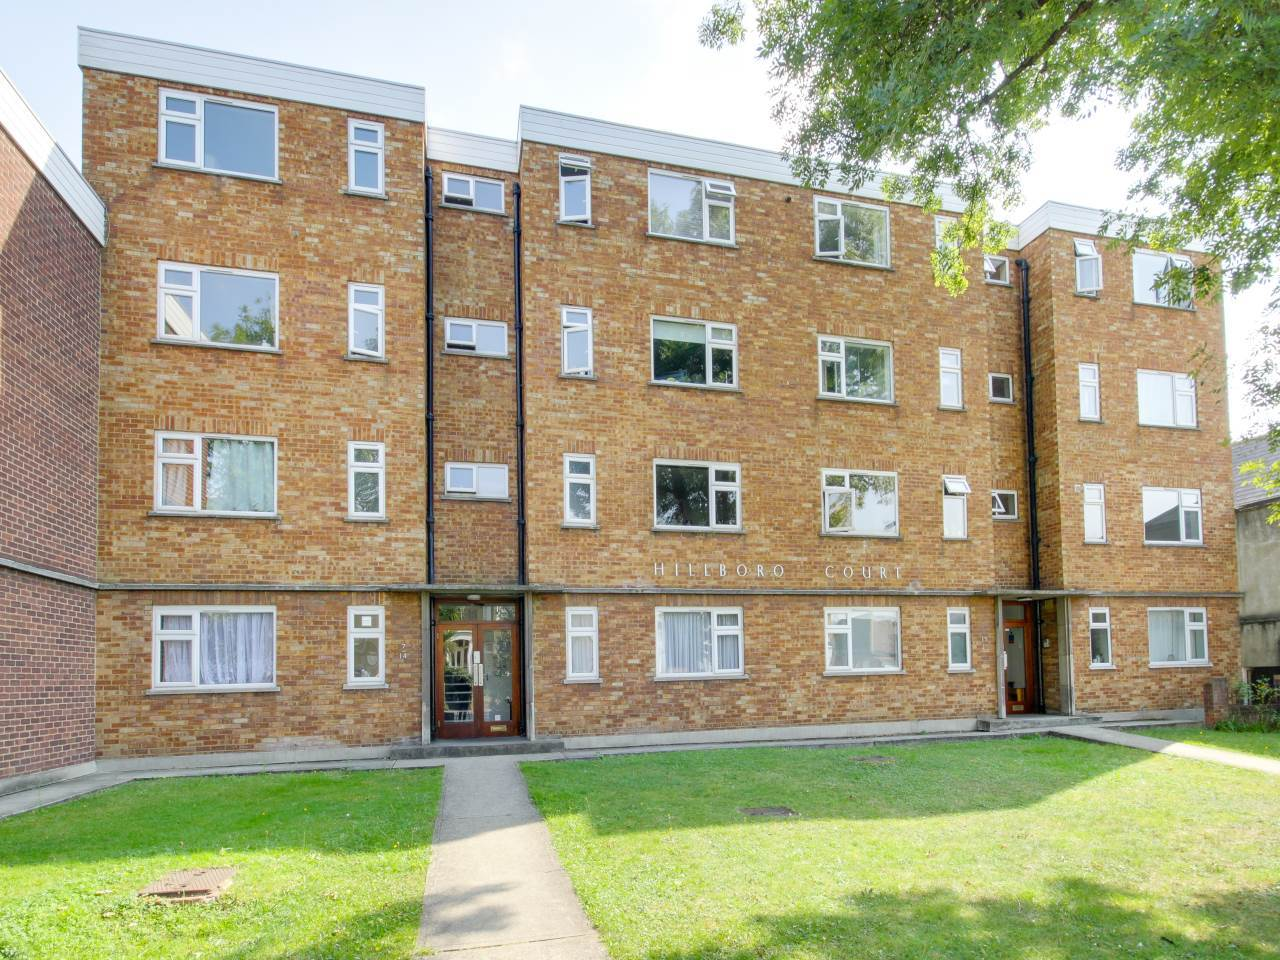 1 bed flat to rent in Hillboro Court, Hainault Road, E11